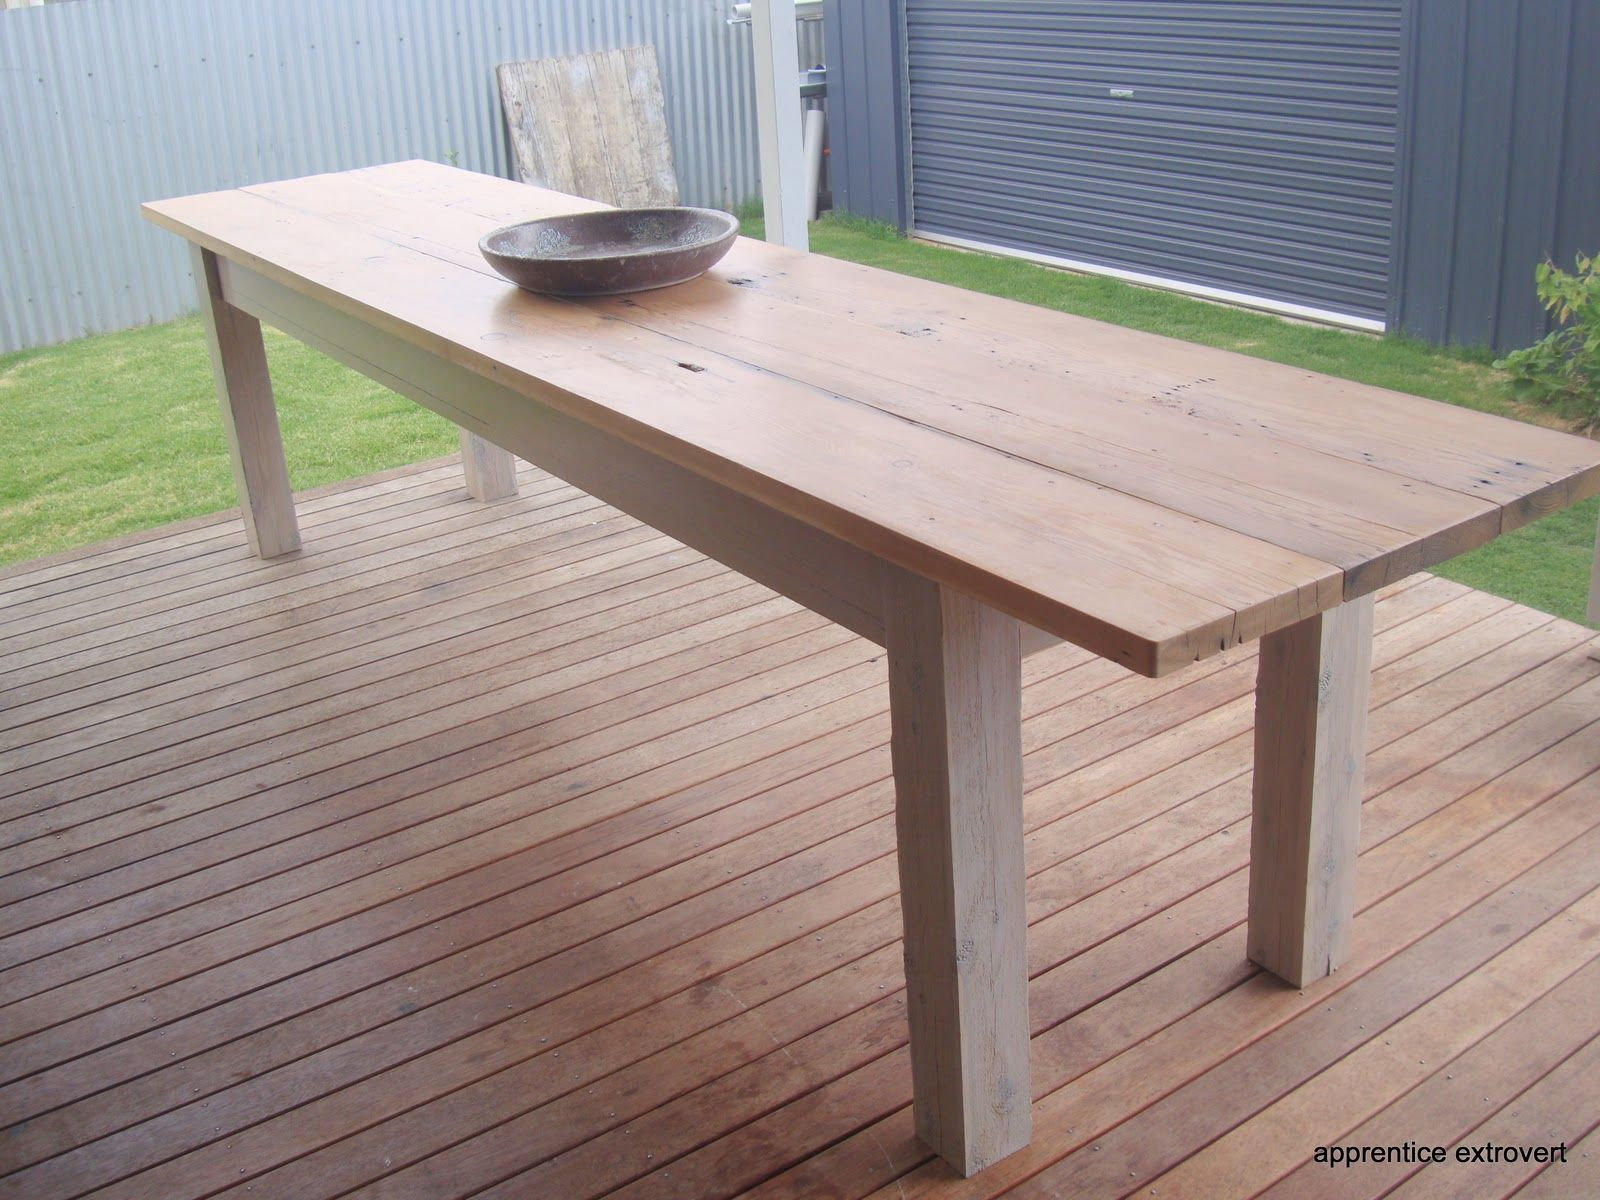 Buffet Table With Storage Underneath ~ This but narrower for outdoor buffet and stool storage